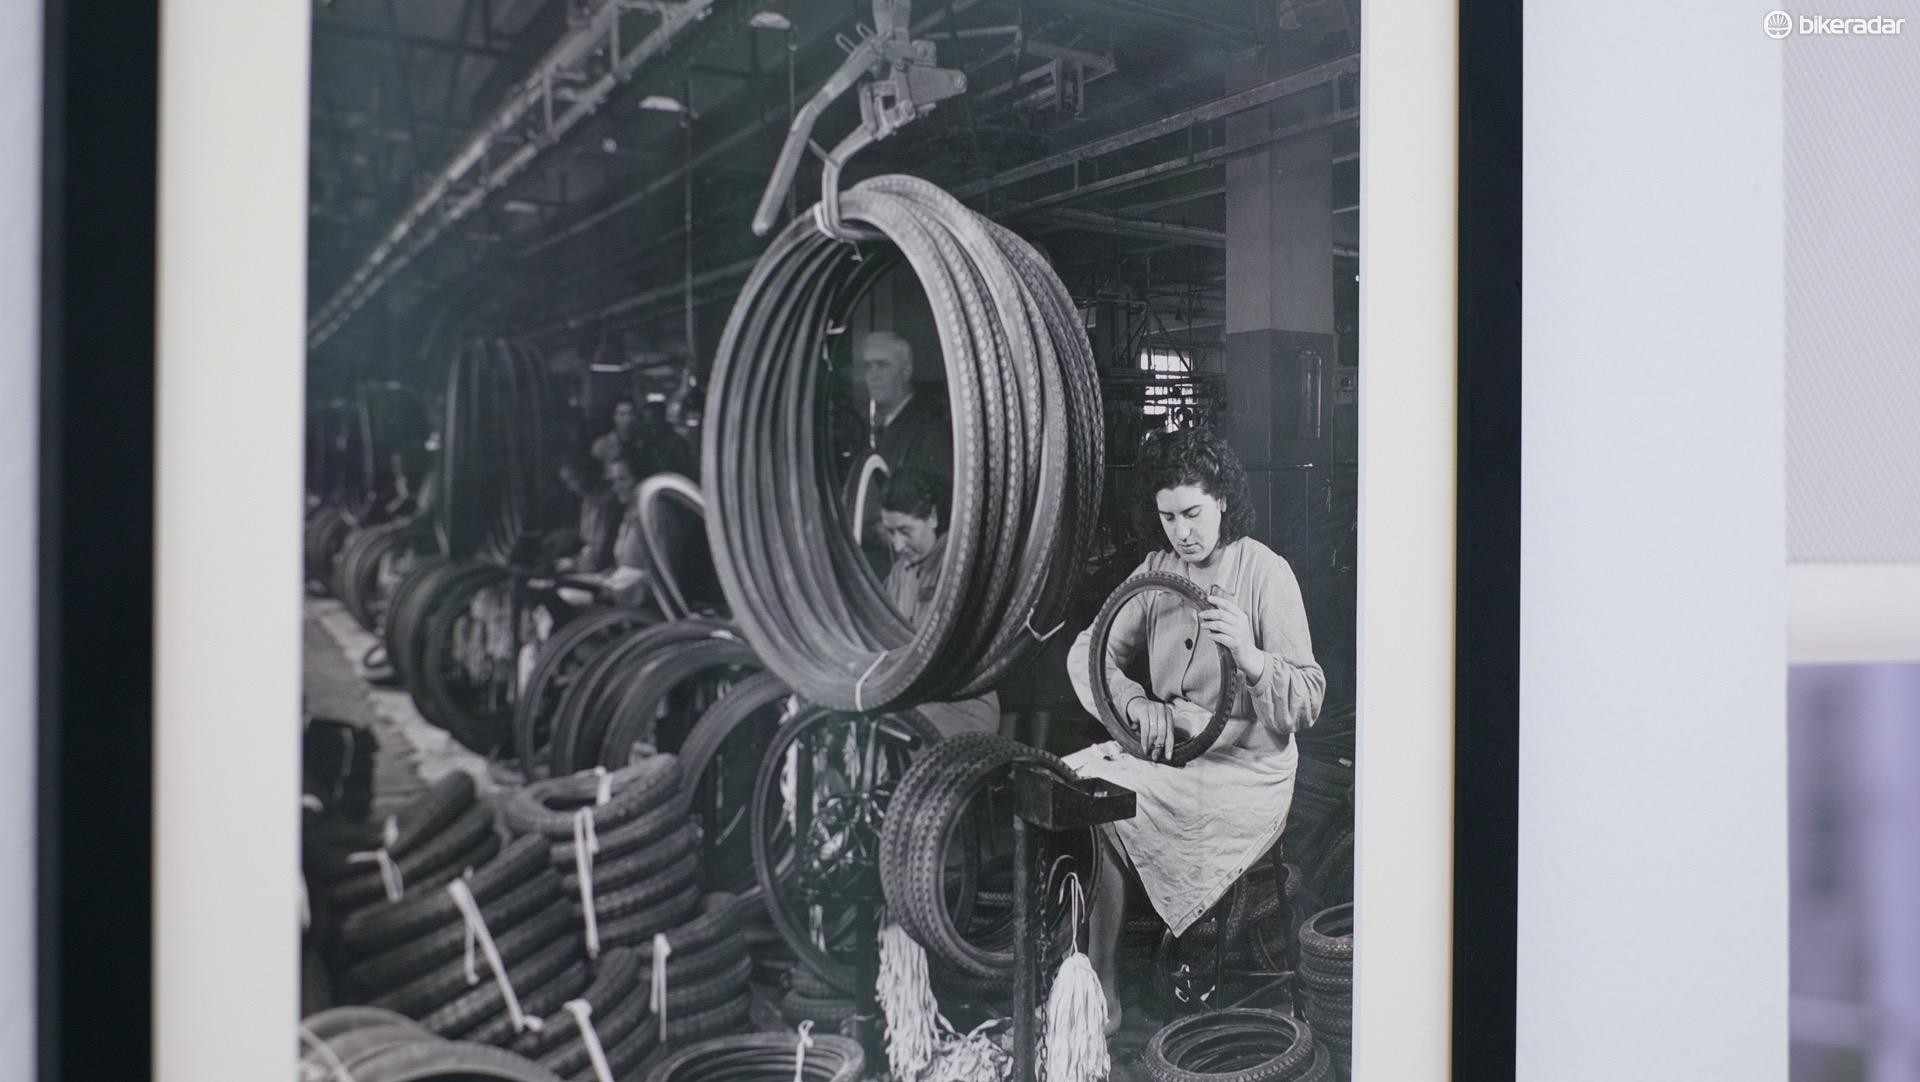 It's been many, many years since Pirelli last put its name to bicycle tyres